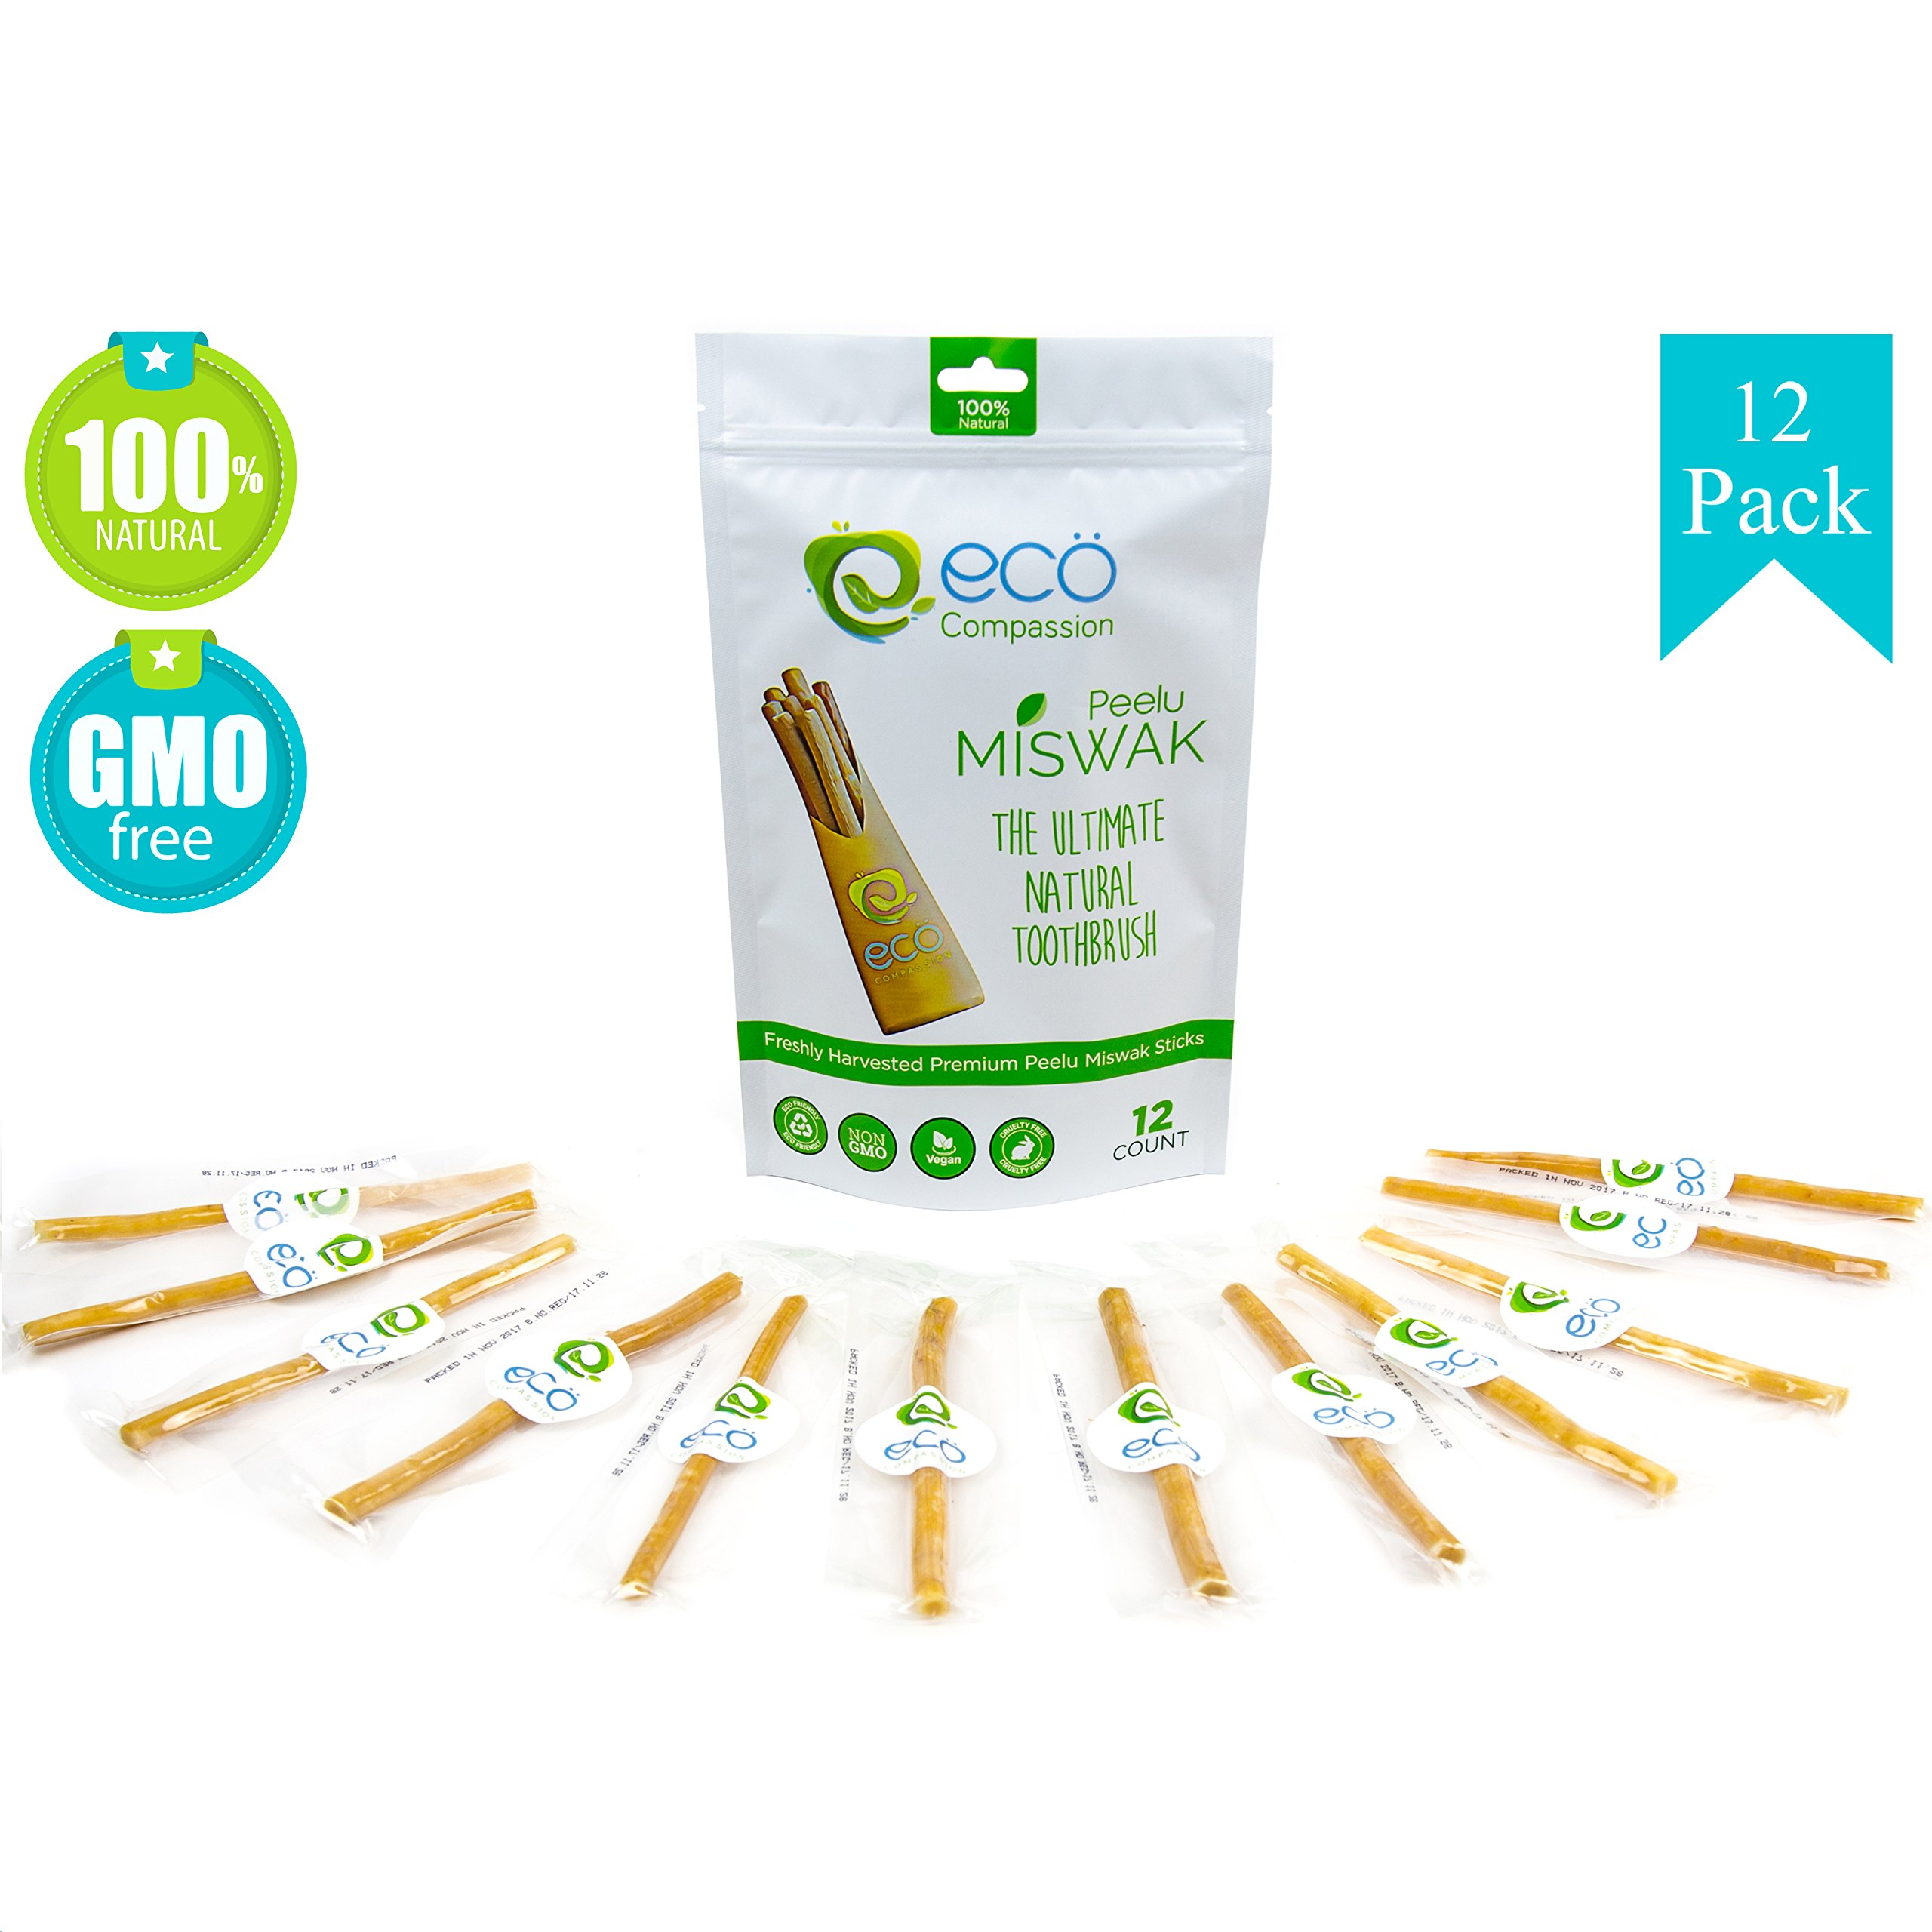 12 Miswak Sticks for Teeth by Eco Compassion   100% Natural Toothbrush   Eco Friendly Sewak Chewing Stick for Teeth Whitening   Whiter, Fresher Breath   A Healthy Manual Toothbrush